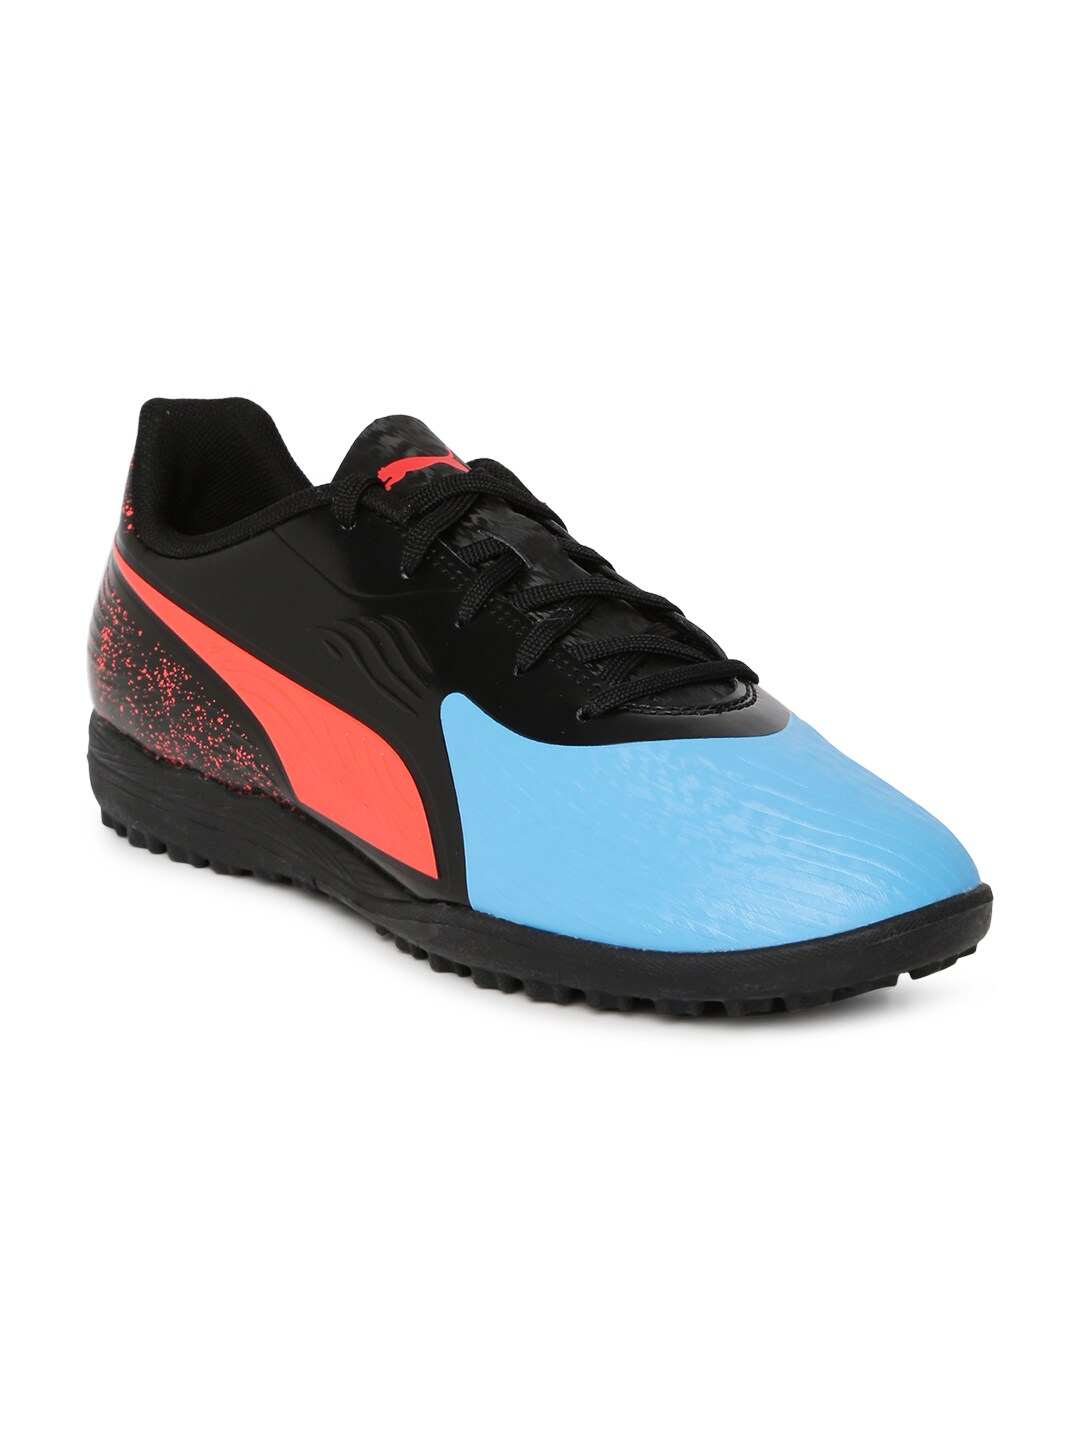 reputable site be515 bc8c7 Shoes For Boys - Buy Shoes For Boys online in India